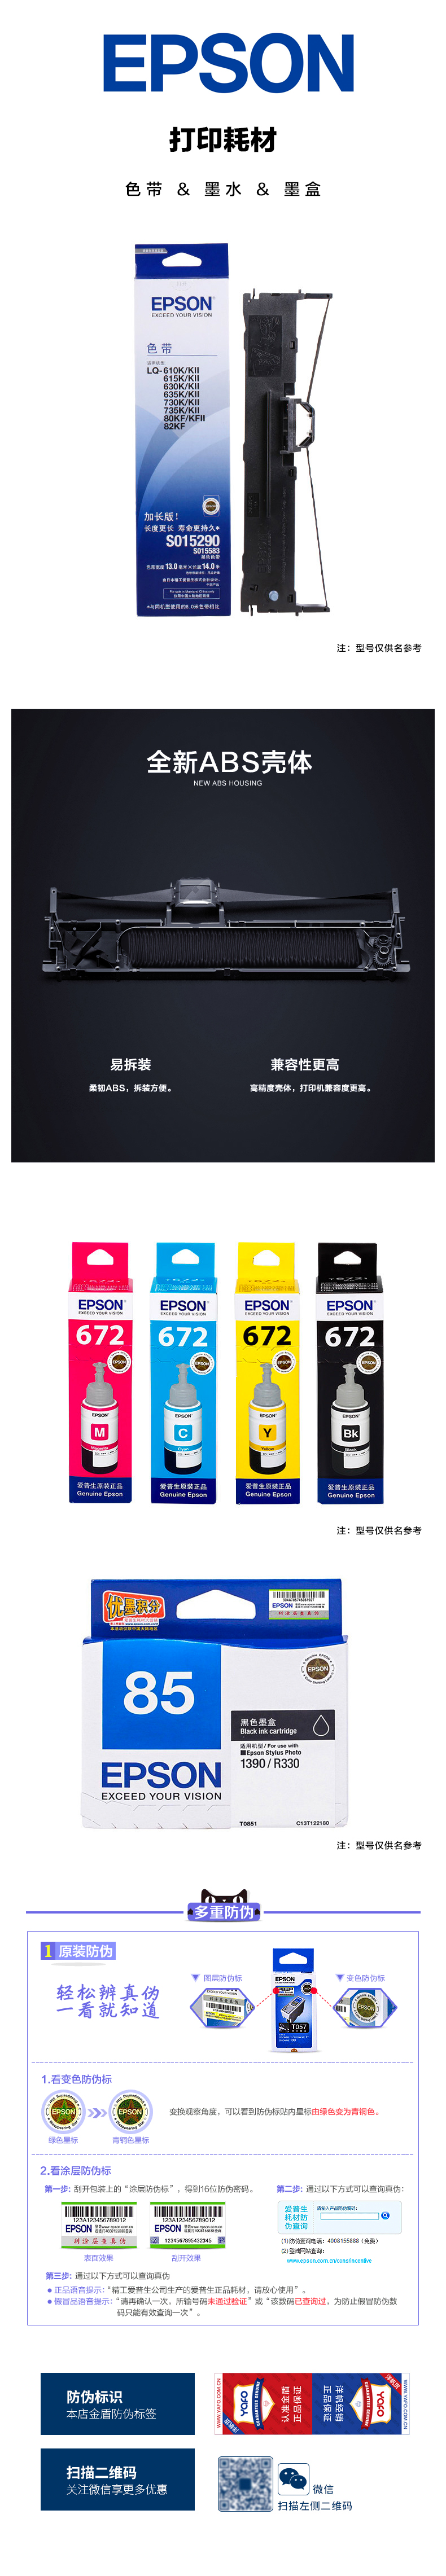 epson详情页-pc.png